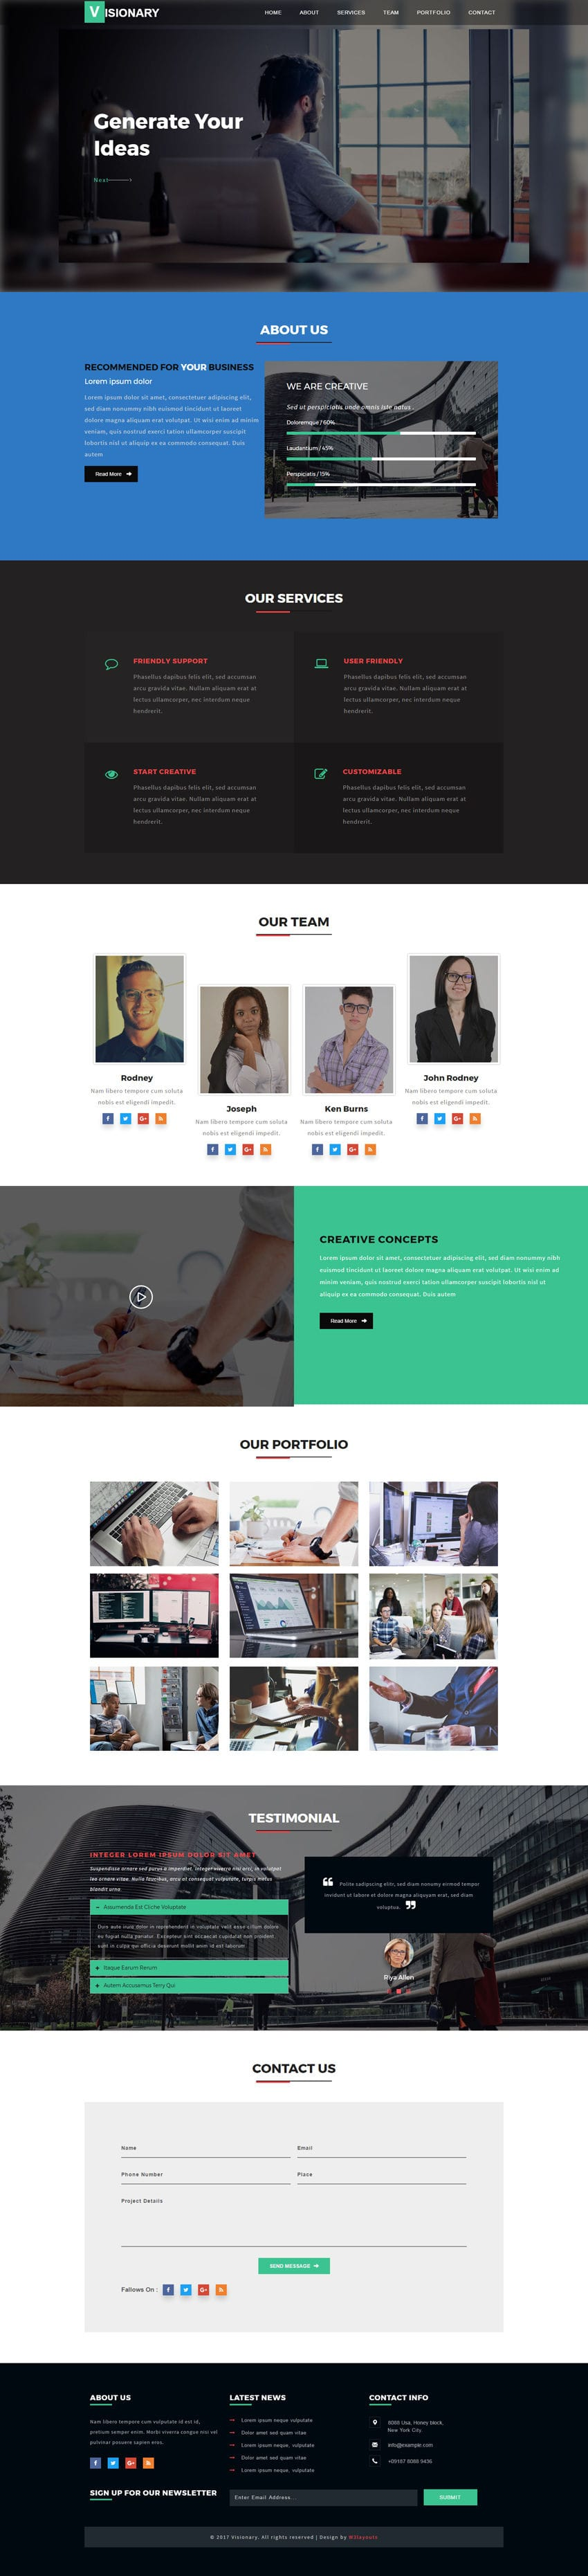 Visionary a Corporate Category Flat Bootstrap Responsive